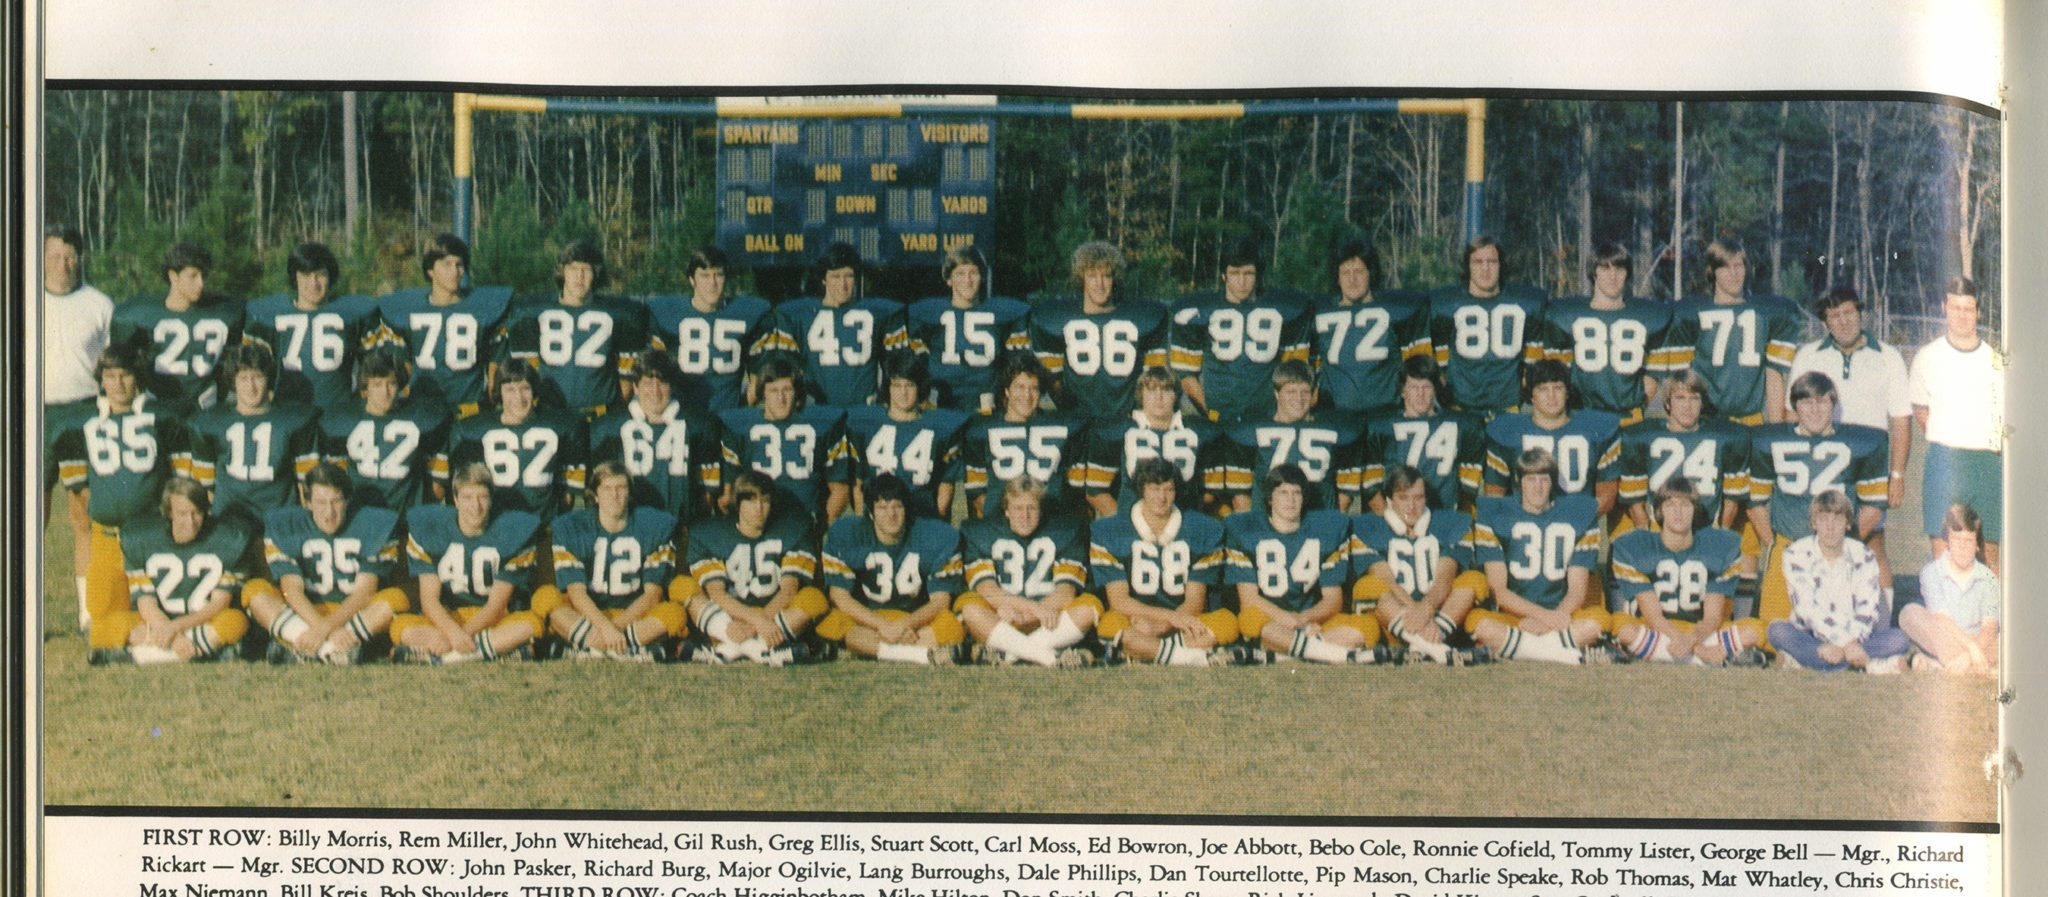 State Champions: FIRST ROW: Billy Morris, Rem Miller, John Whitehead, Gil Rush, Greg Ellis, Stuart Scott, Carl Moss, Ed Bowron, Joe Abbott, Bebo Cole, Ronnie Cofield, Tommy Lister, George Bell -- Mgr. and Richard Rickart -- Mgr. SECOND ROW: John Pasker, Richard Burg, Major Ogilvie, Lang Burroughs, Dale Phillips, Dan Tourtellotte, Pip Mason, Charlie Speake, Rob Thomas, Mat Whatley, Chris Christie, Max Niemann, Bill Kreis and Bob Shoulders. THIRD ROW: Coach Higginbotham, Mike Hilton, Don Smith, Charlie Sharp, Rich Lipscomb, David Kinsey, Scot Cardwell, Doug Walker, Greg McCormick, Keith Bouchillon, George Nakos, Allan Hughes, Sam Price, Mike Mathews, Coach Bradley and Coach Brenner. Photo special to the Journal